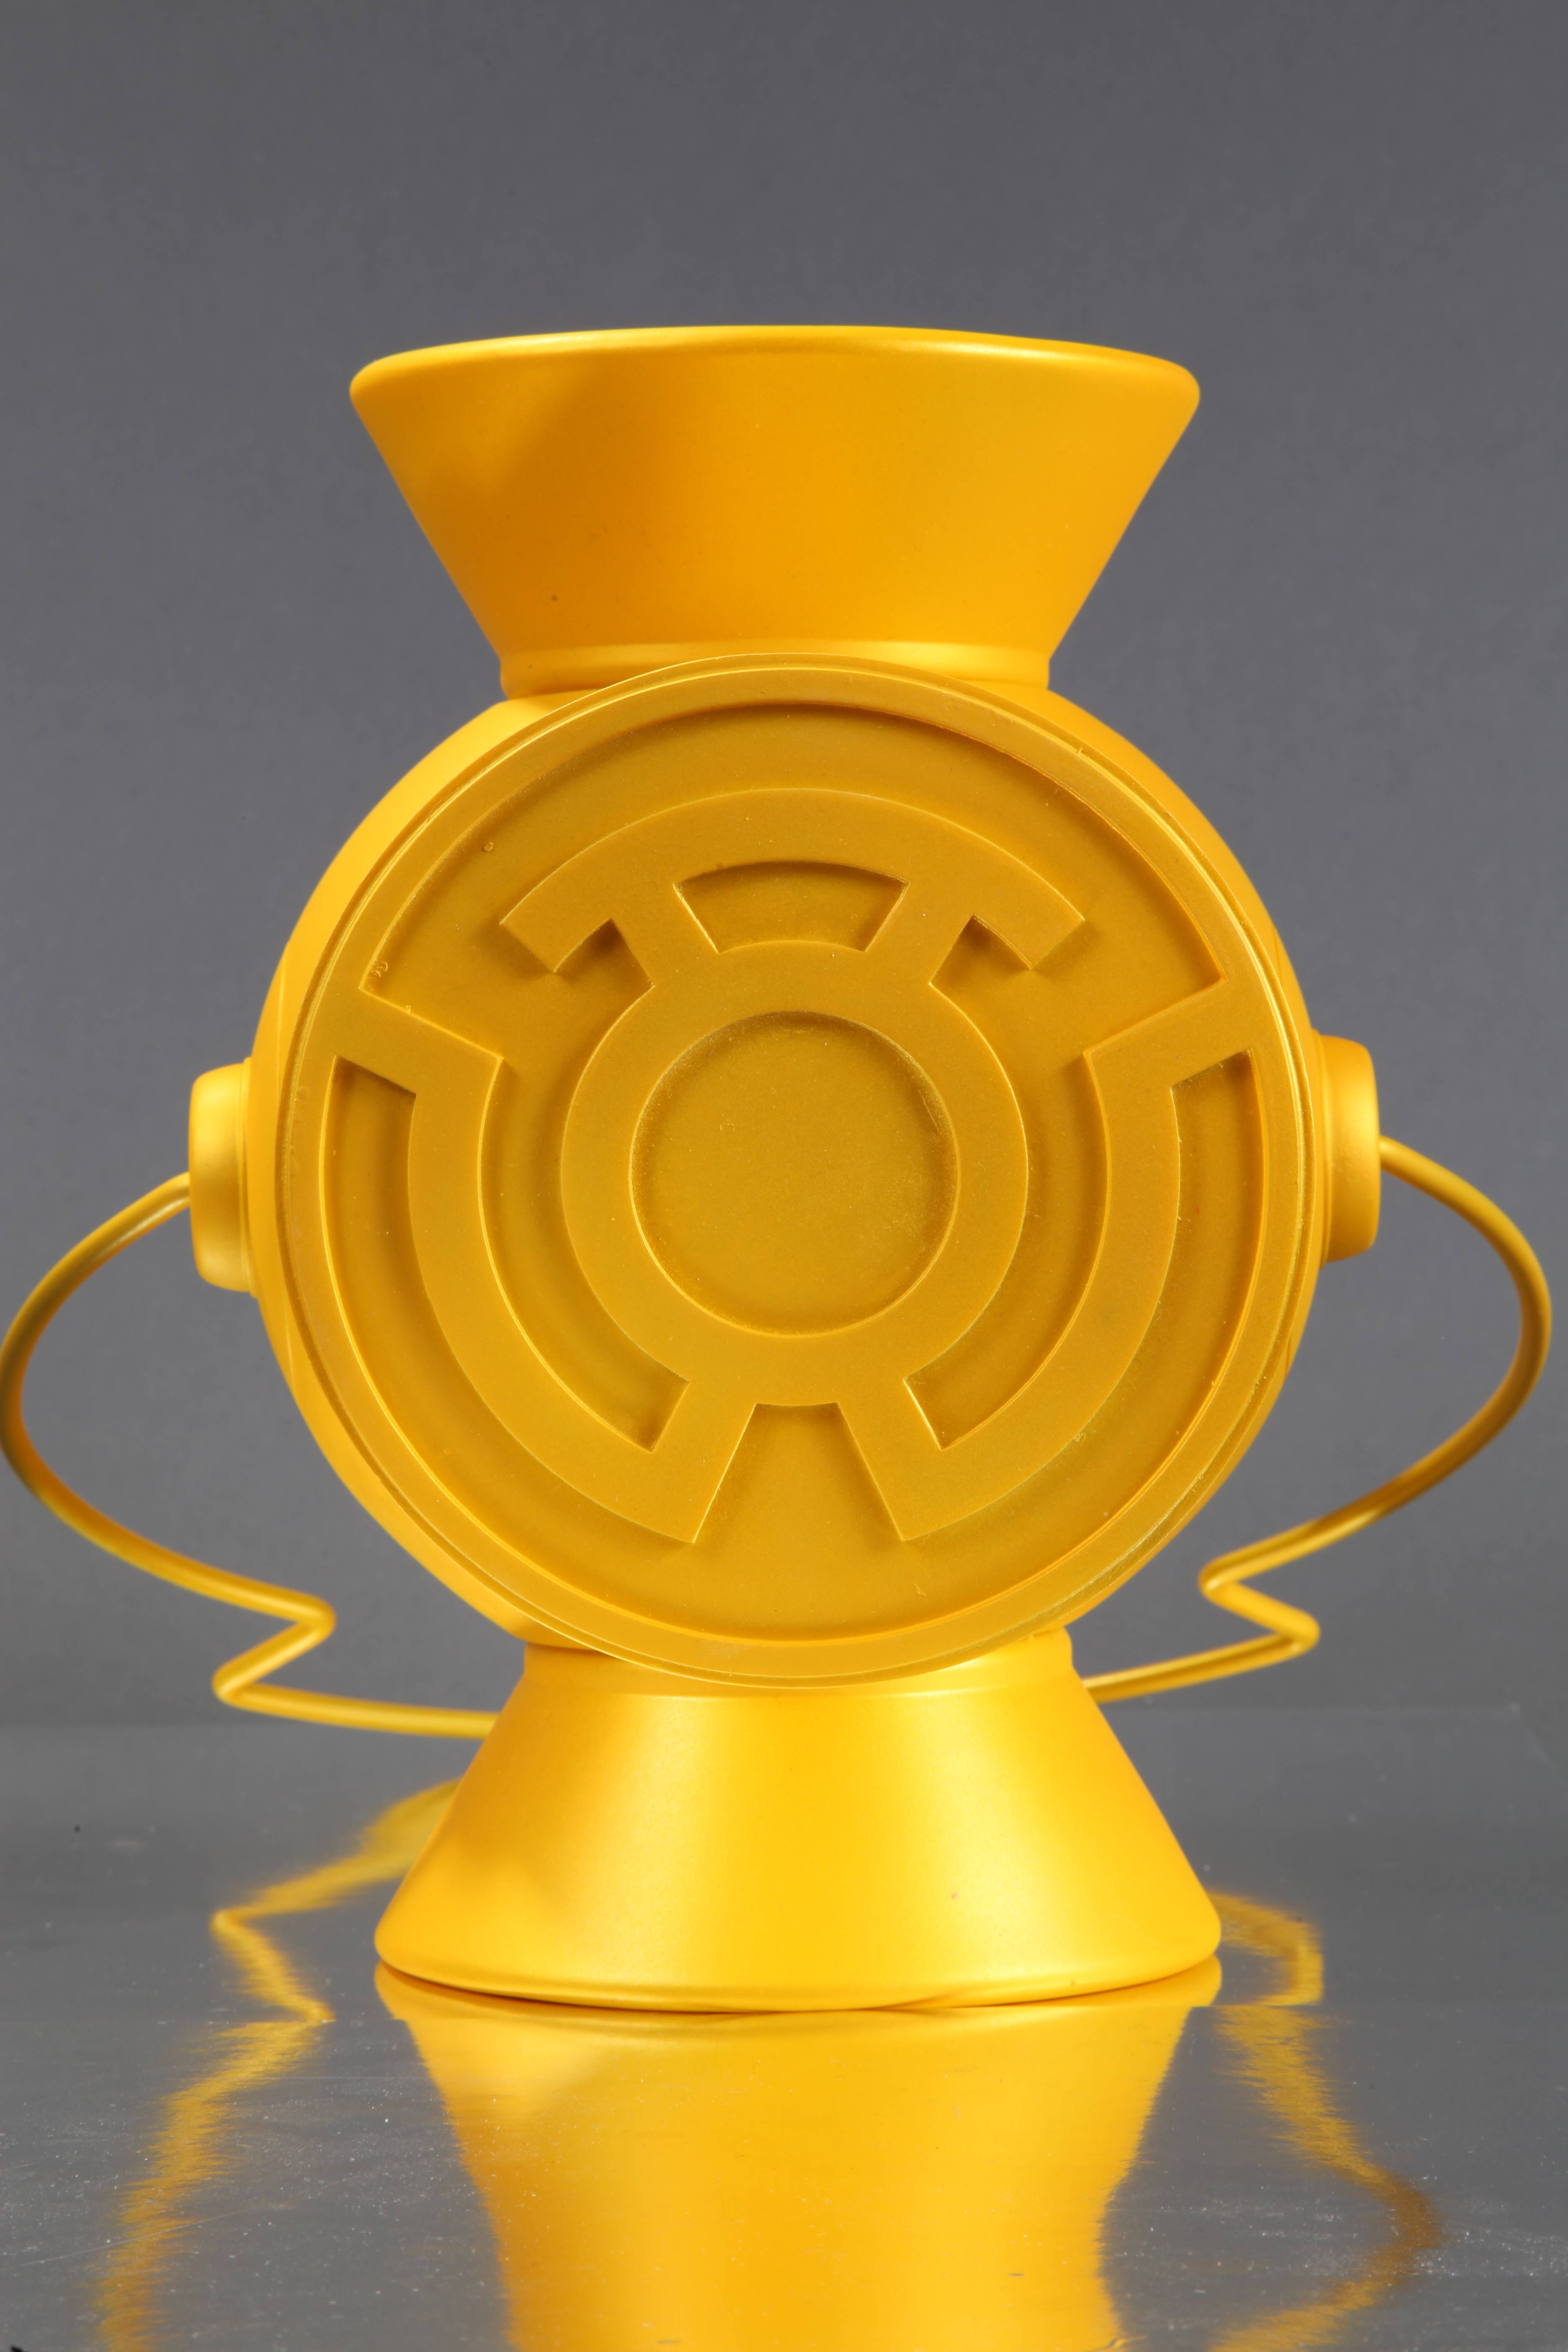 DC Comics Power Battery & Ring Replica Yellow Lantern